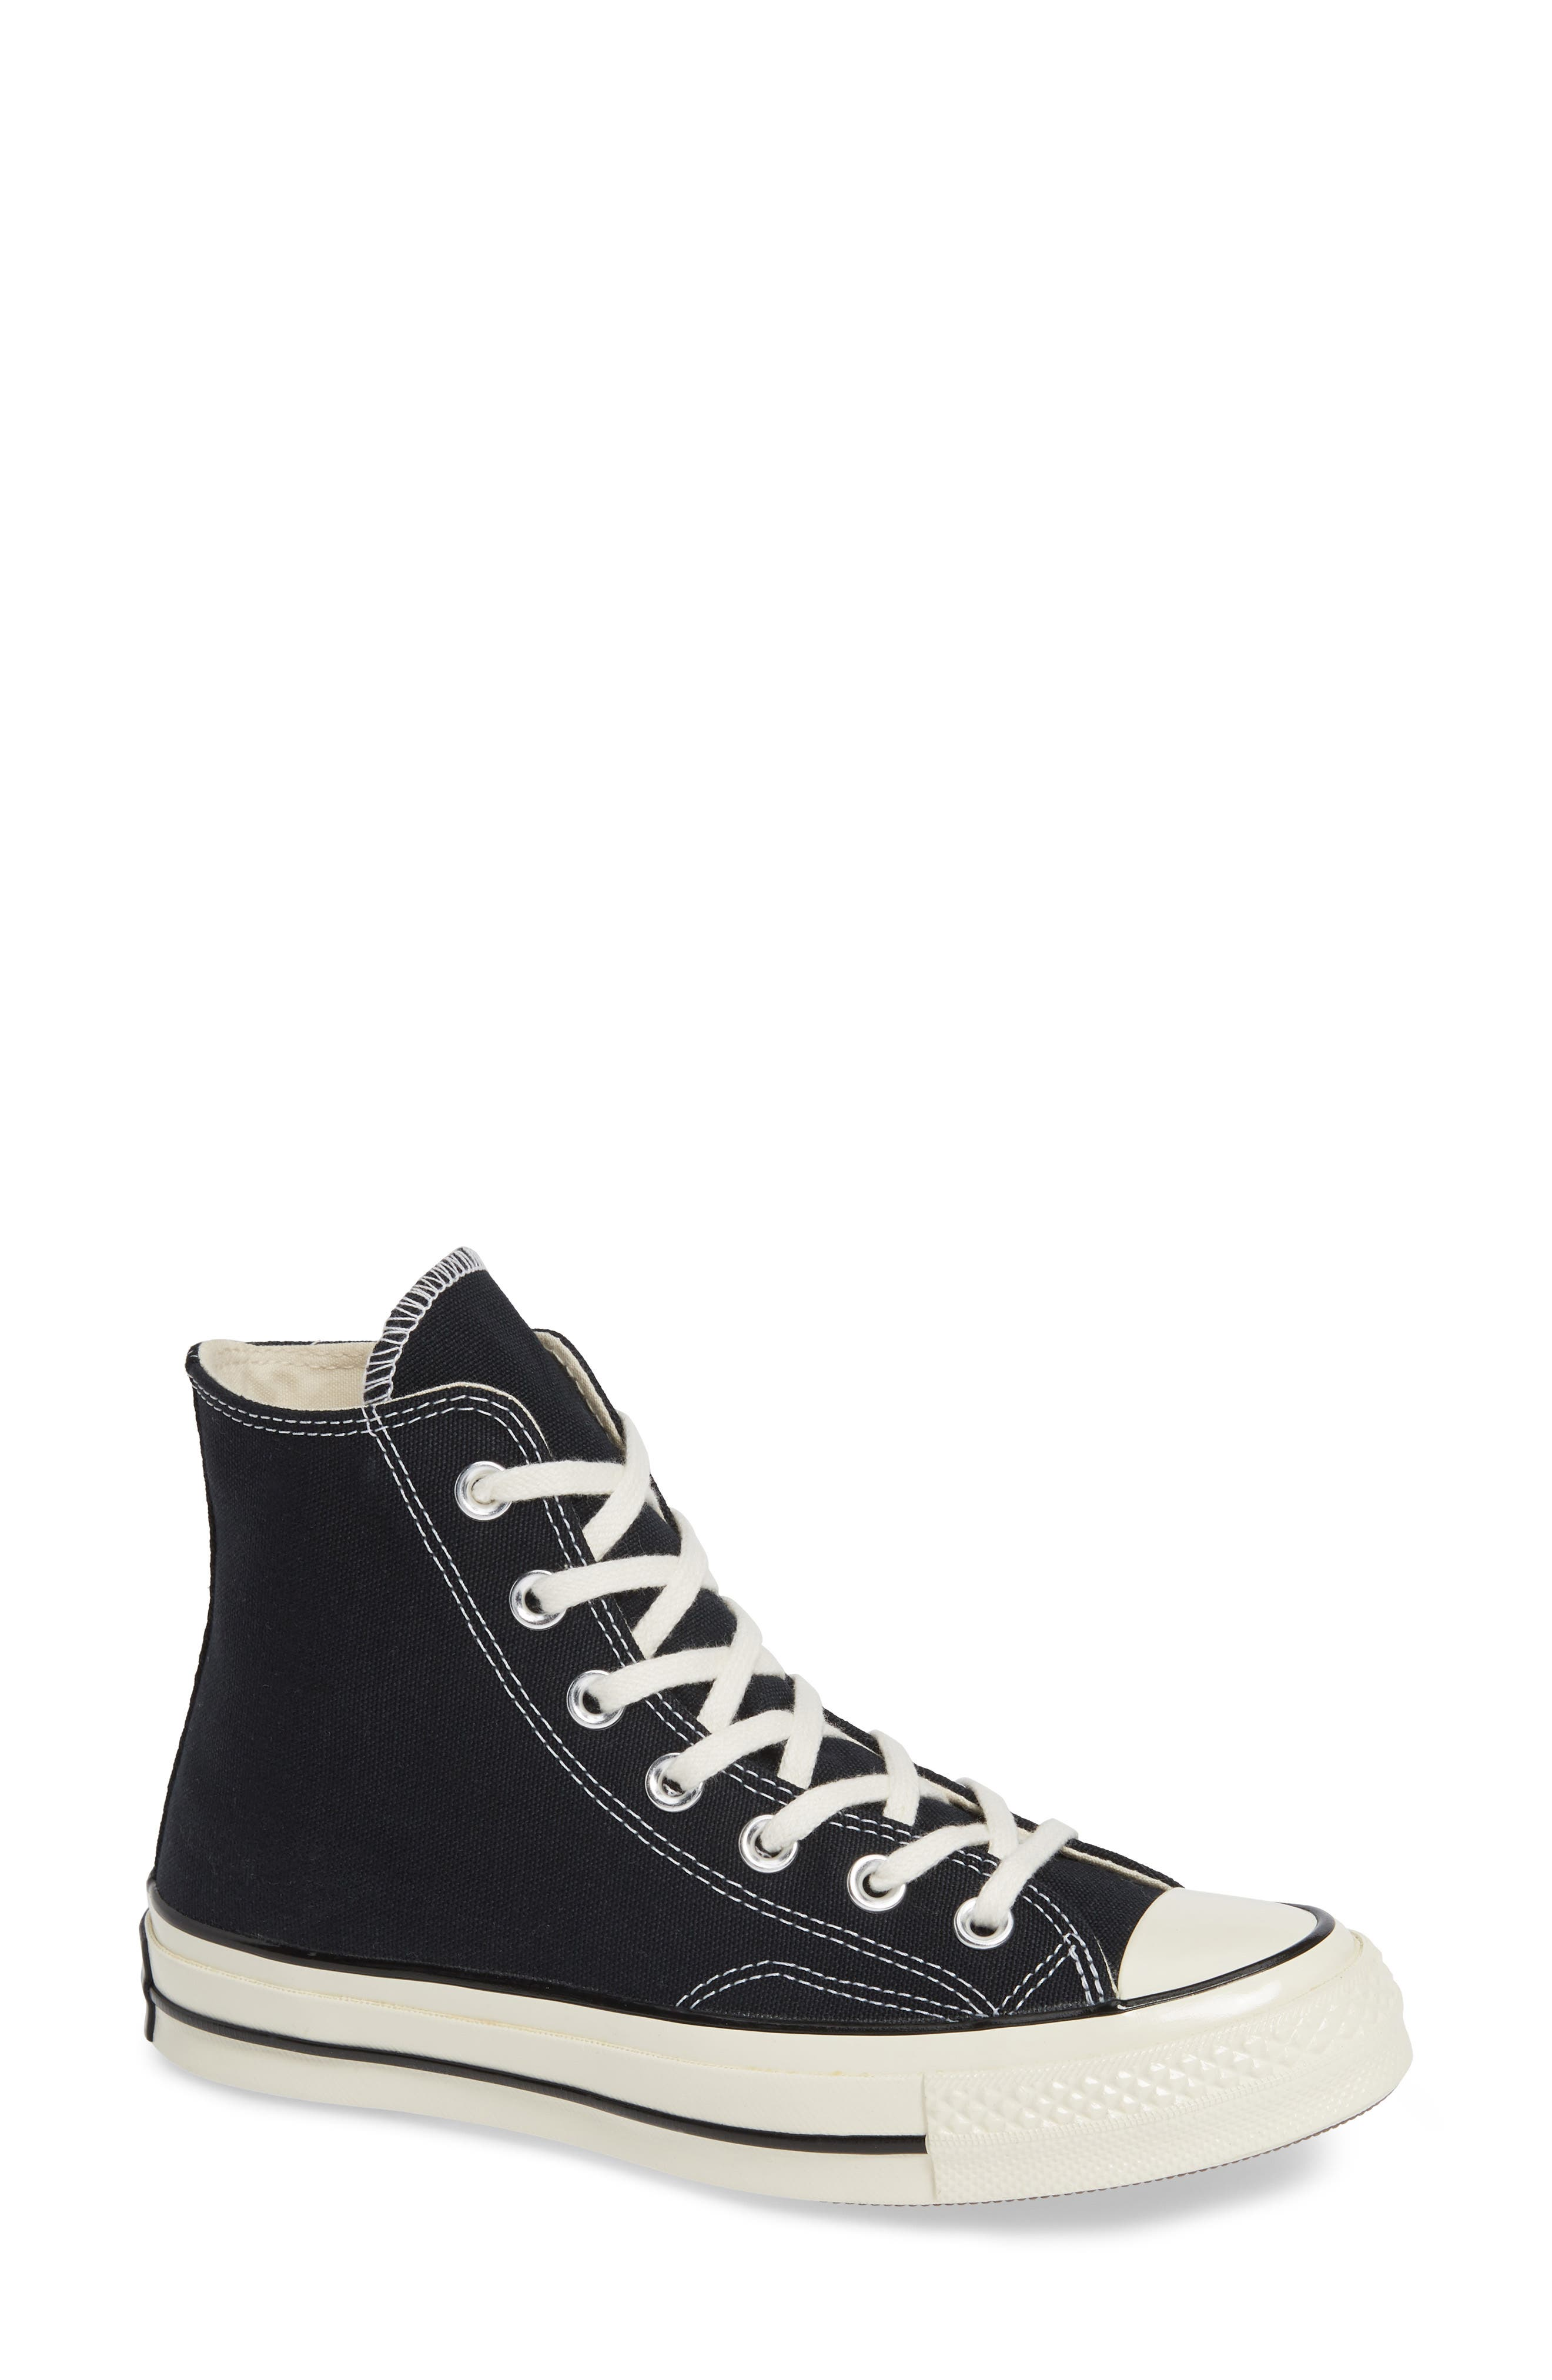 CONVERSE Chuck Taylor<sup>®</sup> All Star<sup>®</sup> Chuck 70 High Top Sneaker, Main, color, BLACK